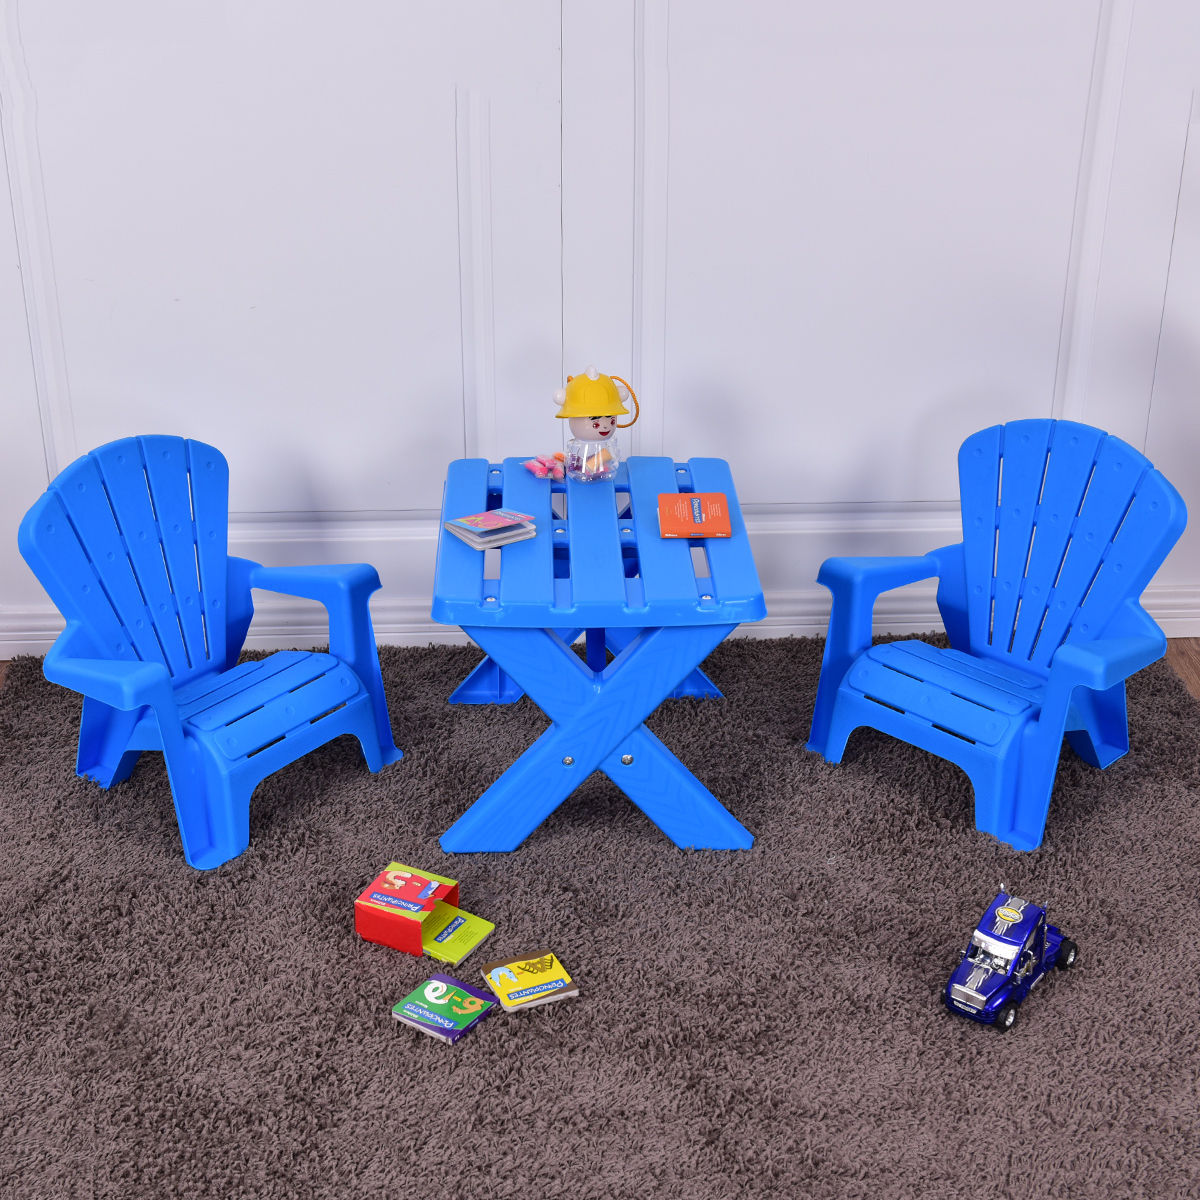 Costway Plastic Children Kids Table & Chair Set 3-Piece Play Furniture In/Outdoor Blue